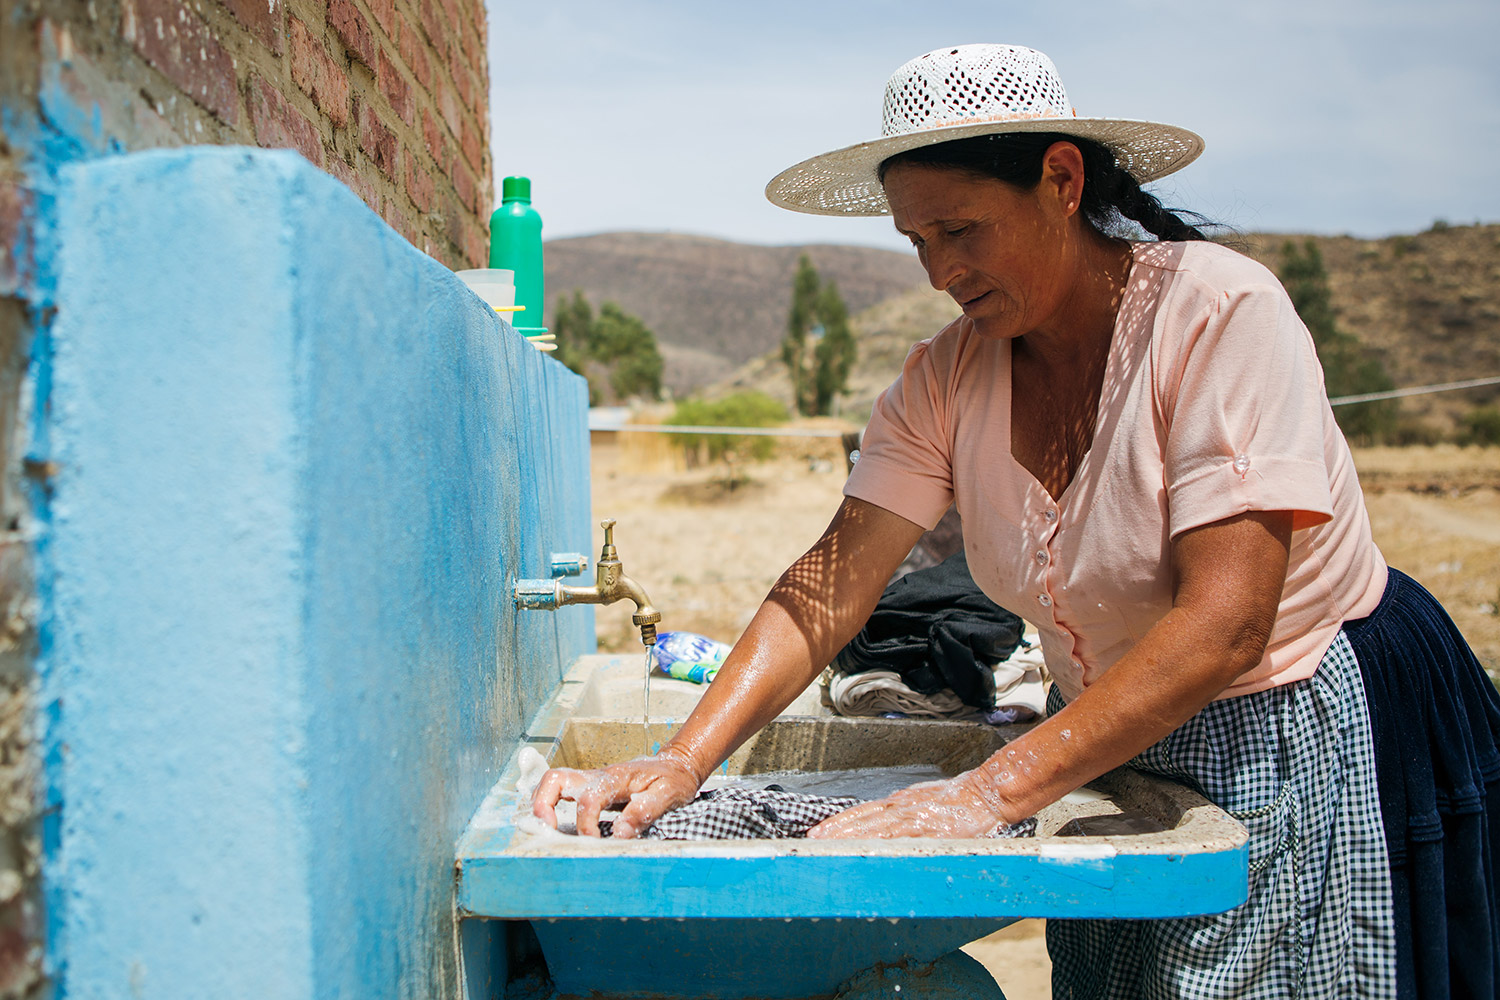 woman washing clothes in outdoor sink | Clean Water in Bolivia | Where We Work | Water For People